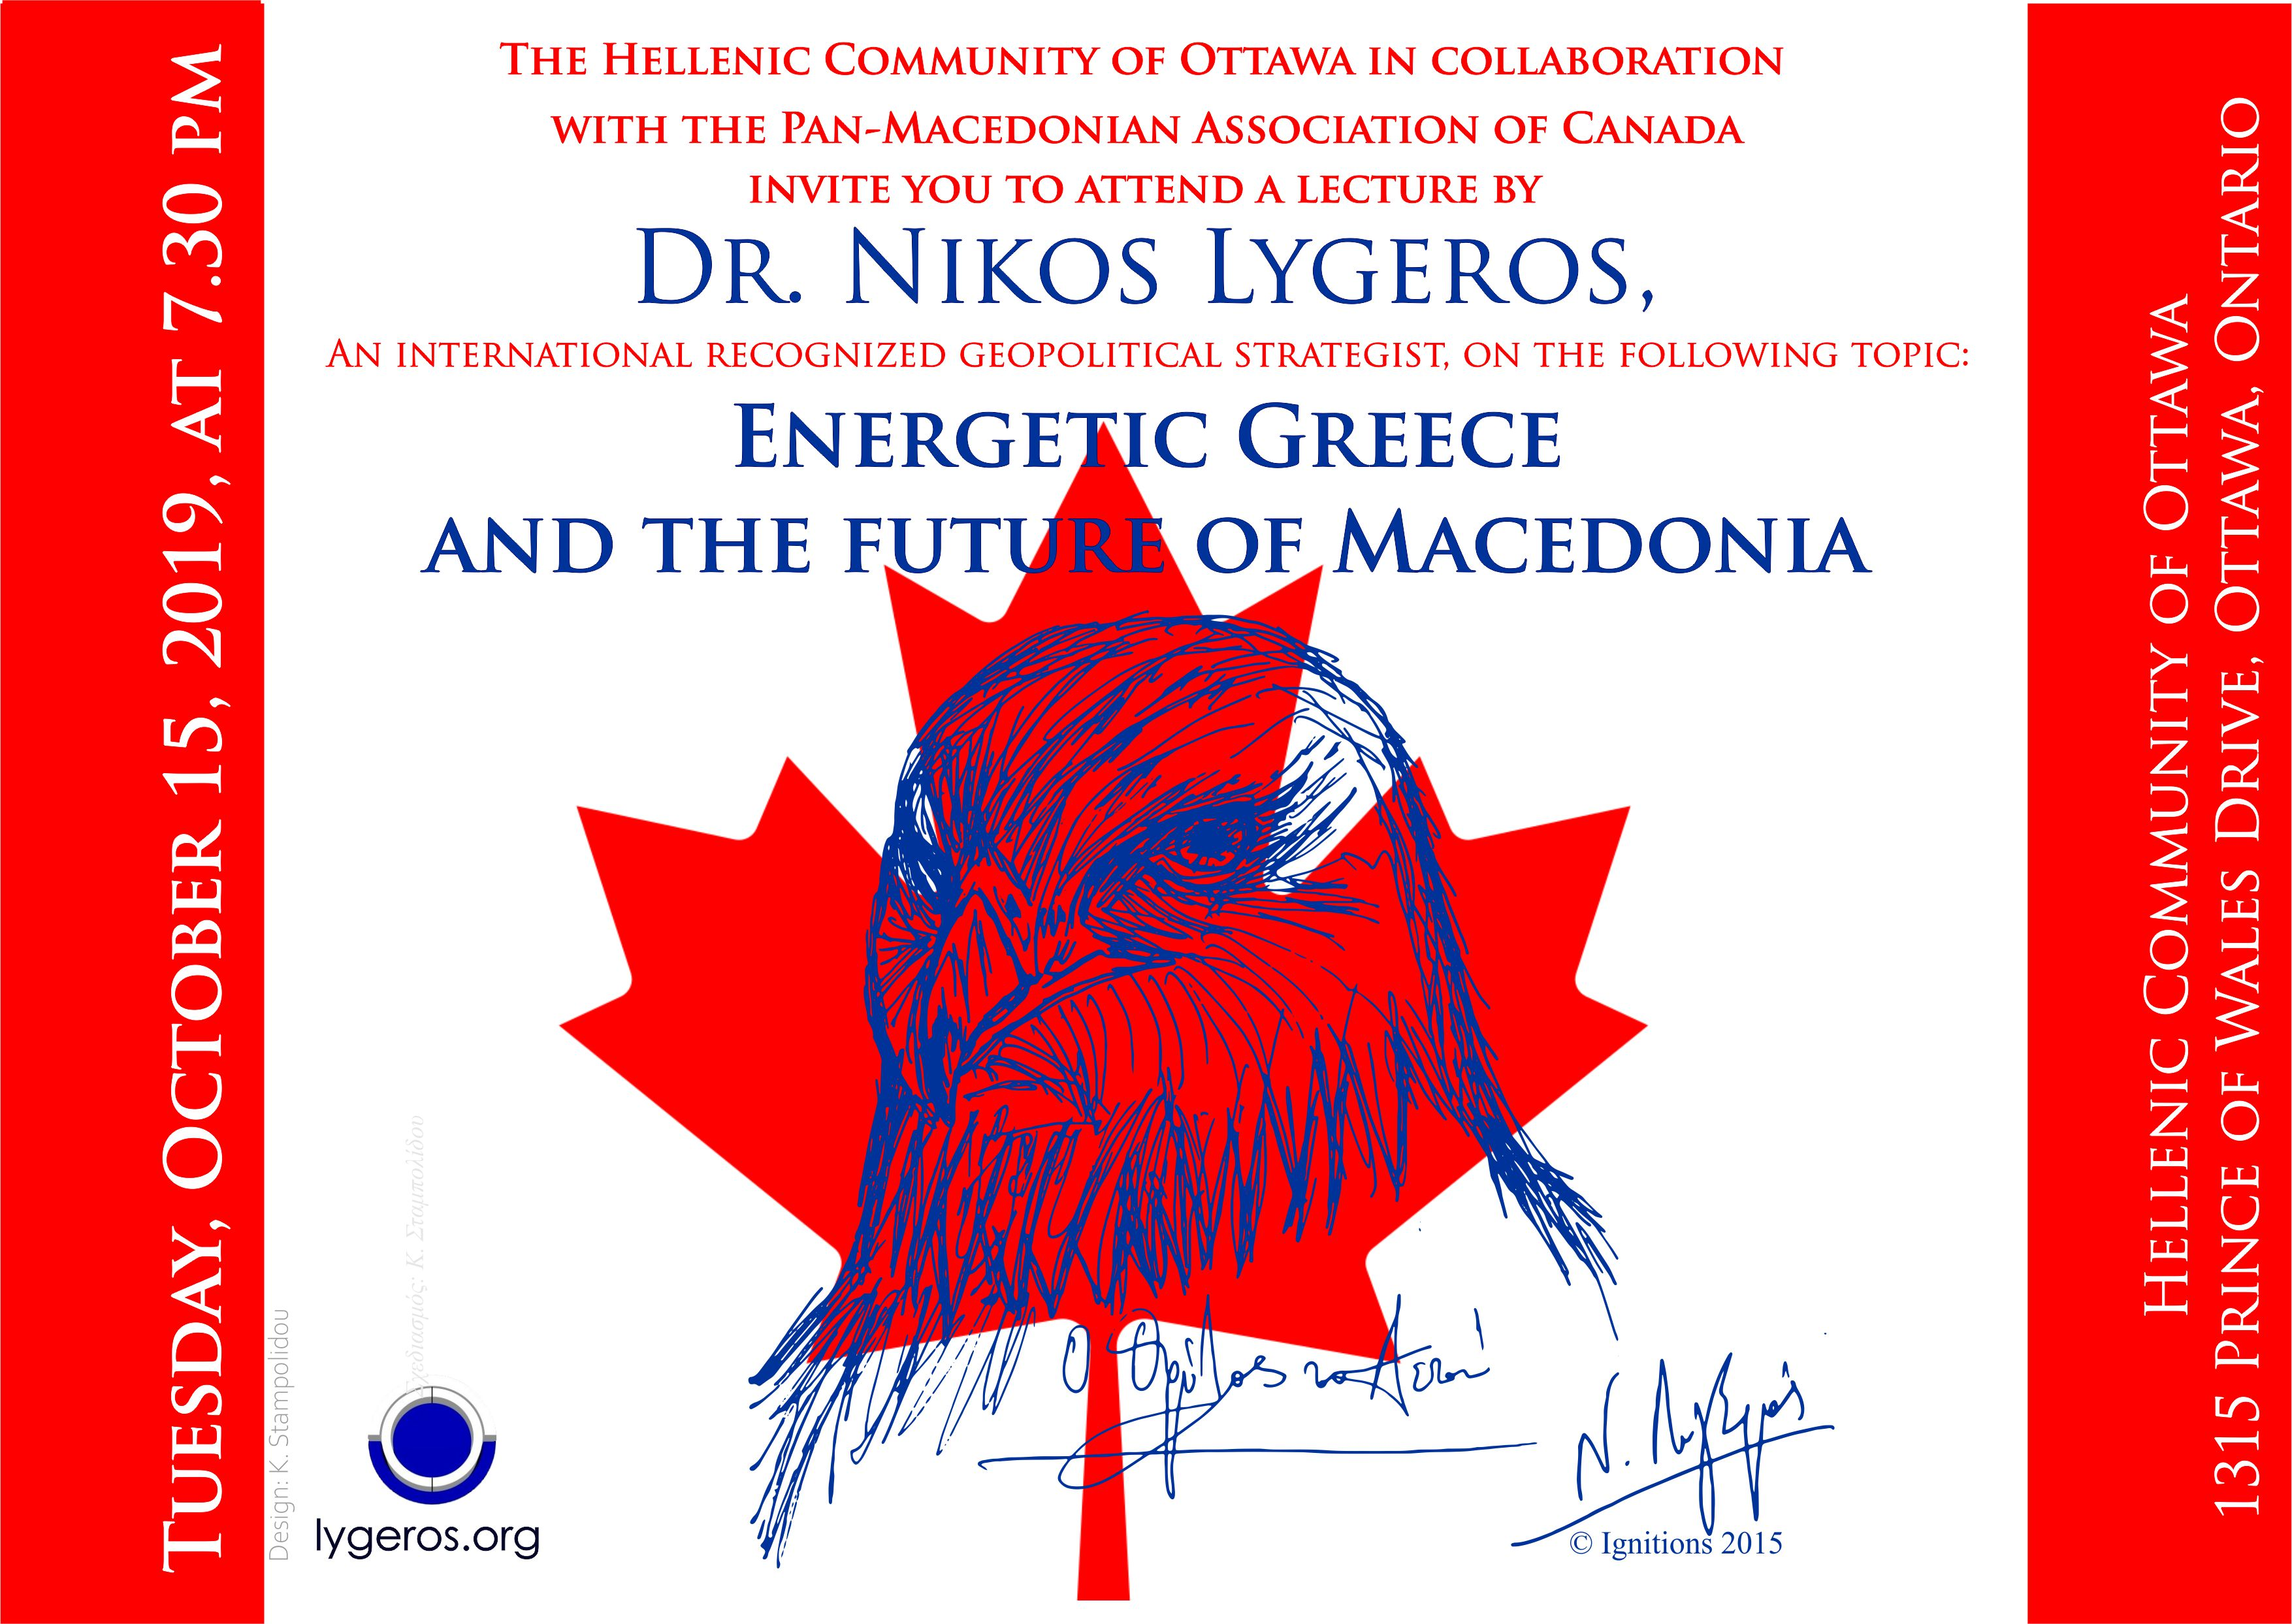 Energetic Greece and the future of Macedonia